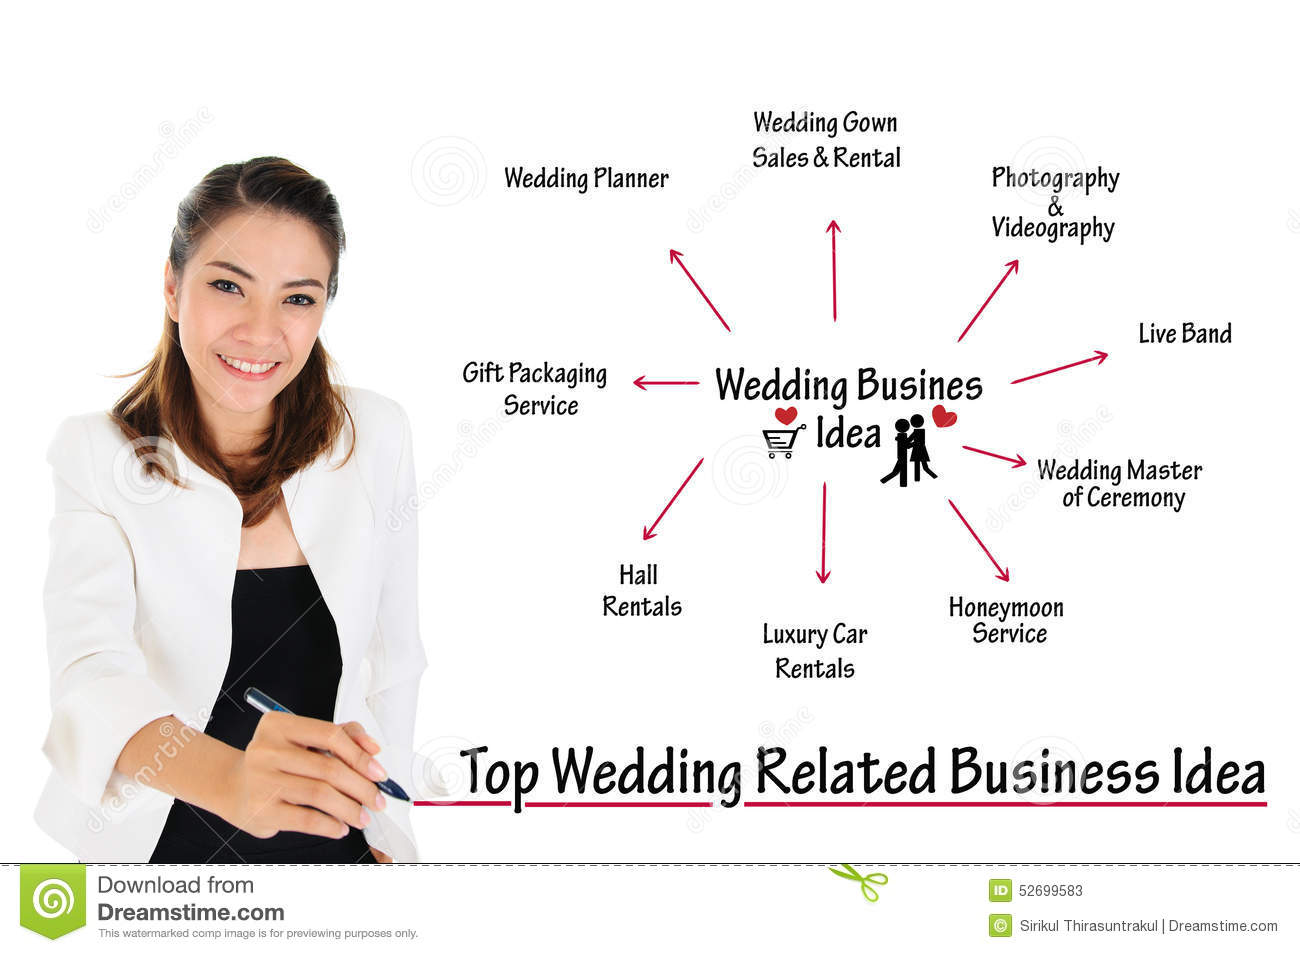 business related essay Get custom business papers and change the way you do your homework any finance and marketing student can greatly benefit from the help of a business essay writing service - custom written papers prepared by sufficiently professional writers can go a long way to helping one clearer understand all the finer points of writing business papers of this kind.